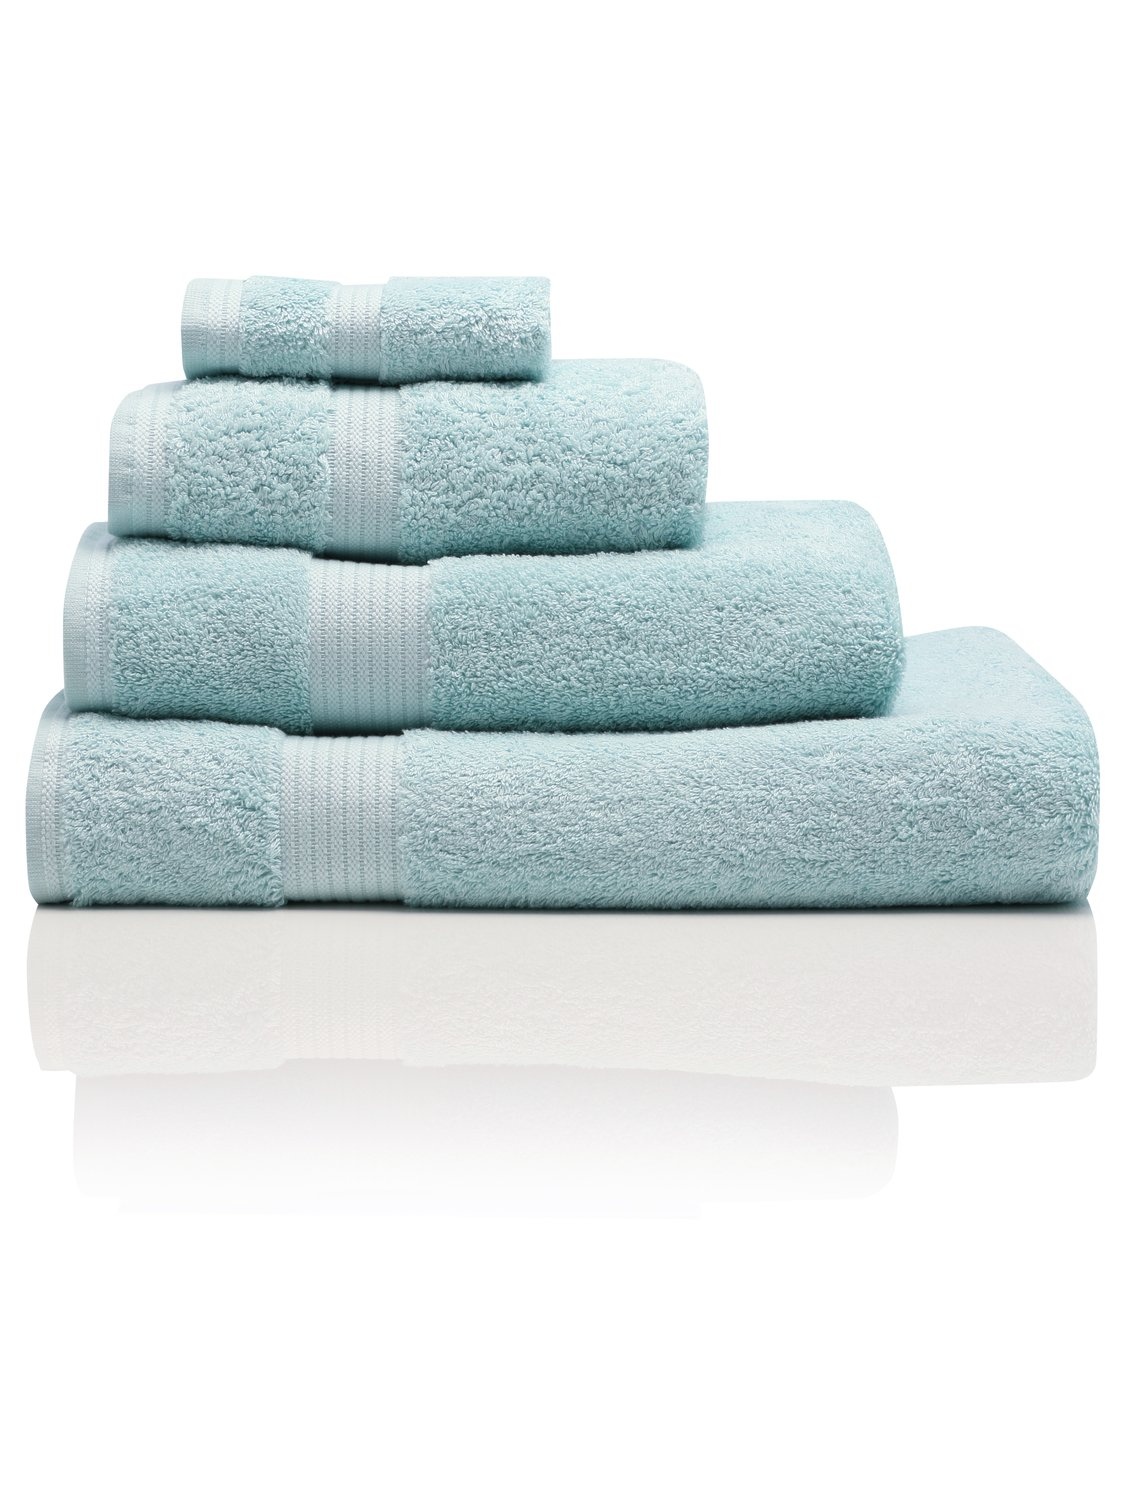 100% Combed Cotton 580Gsm Soft And Absorbent Bathroom Facecloth - Peppermint